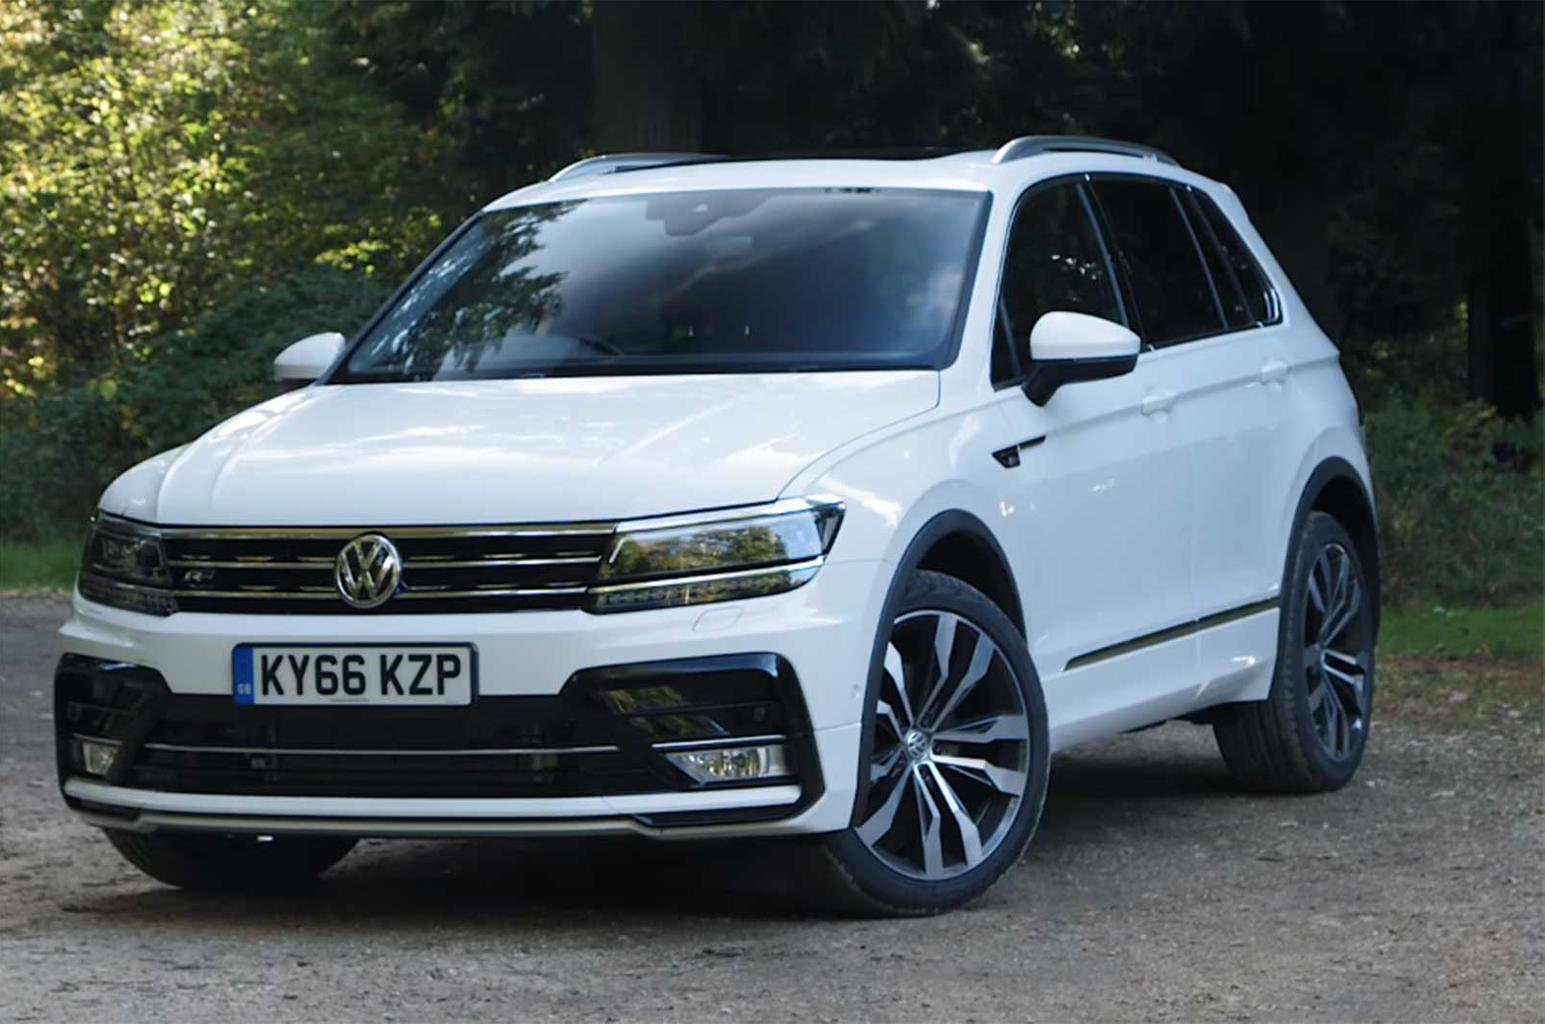 Volkswagen Tiguan reviewed on video